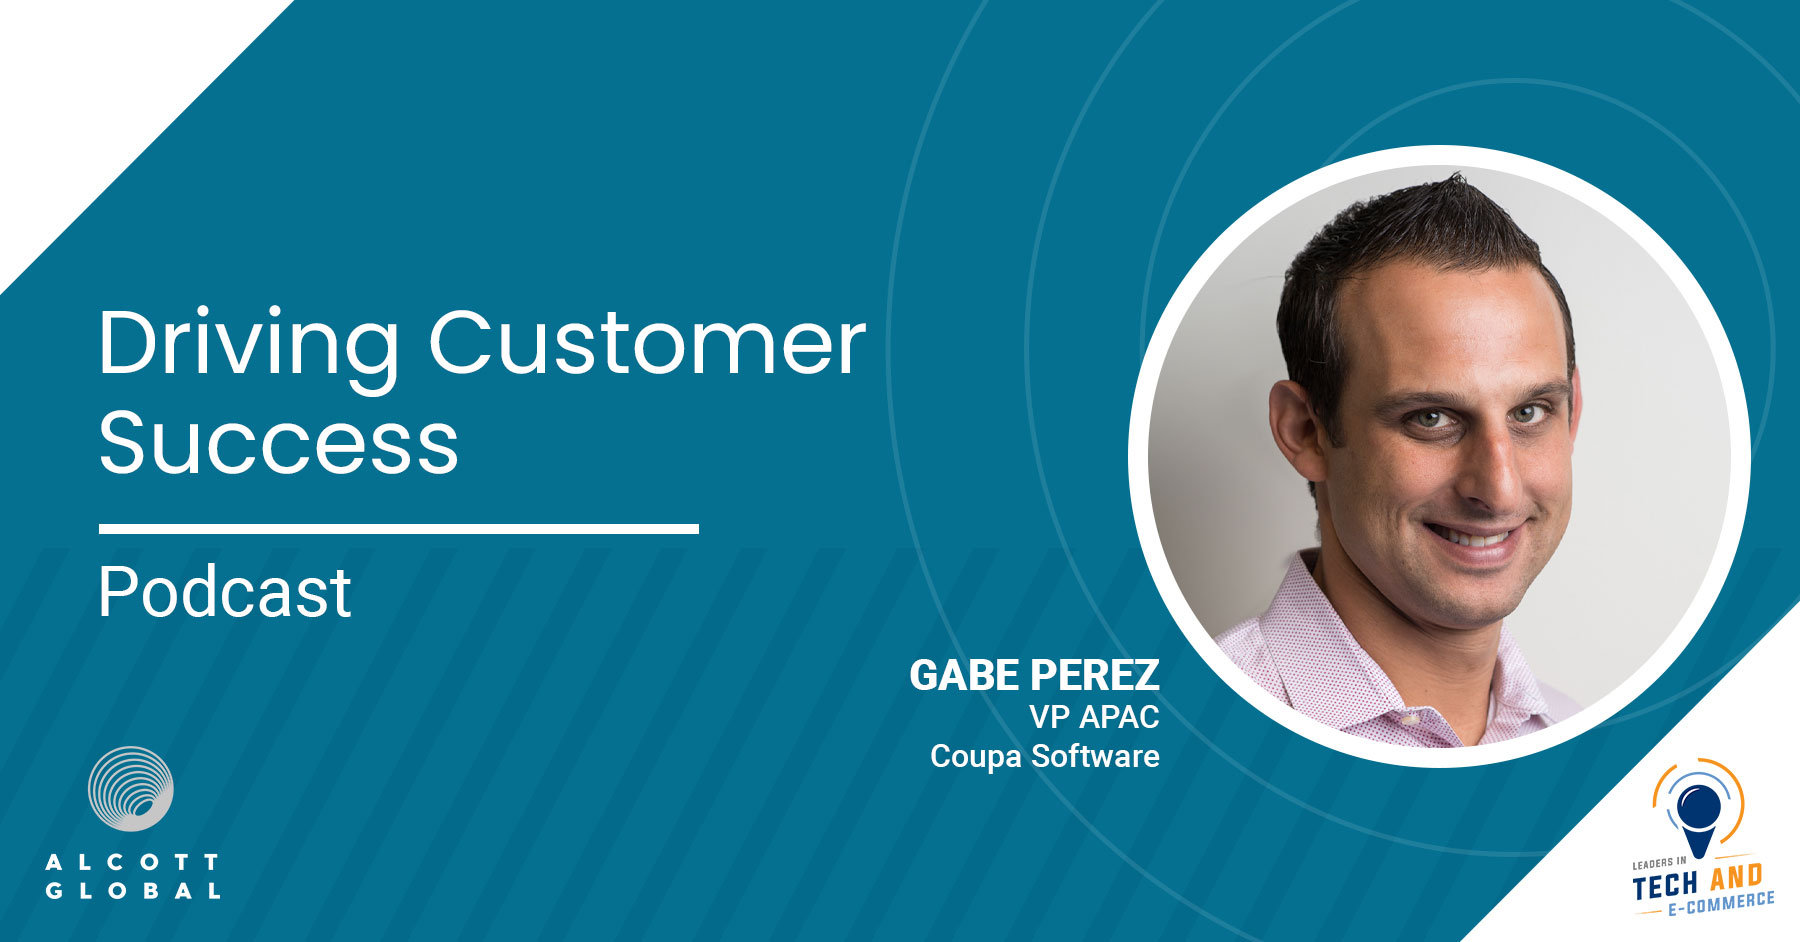 Driving Customer Success with Gabe Perez VP APAC at Coupa Software Featured Image